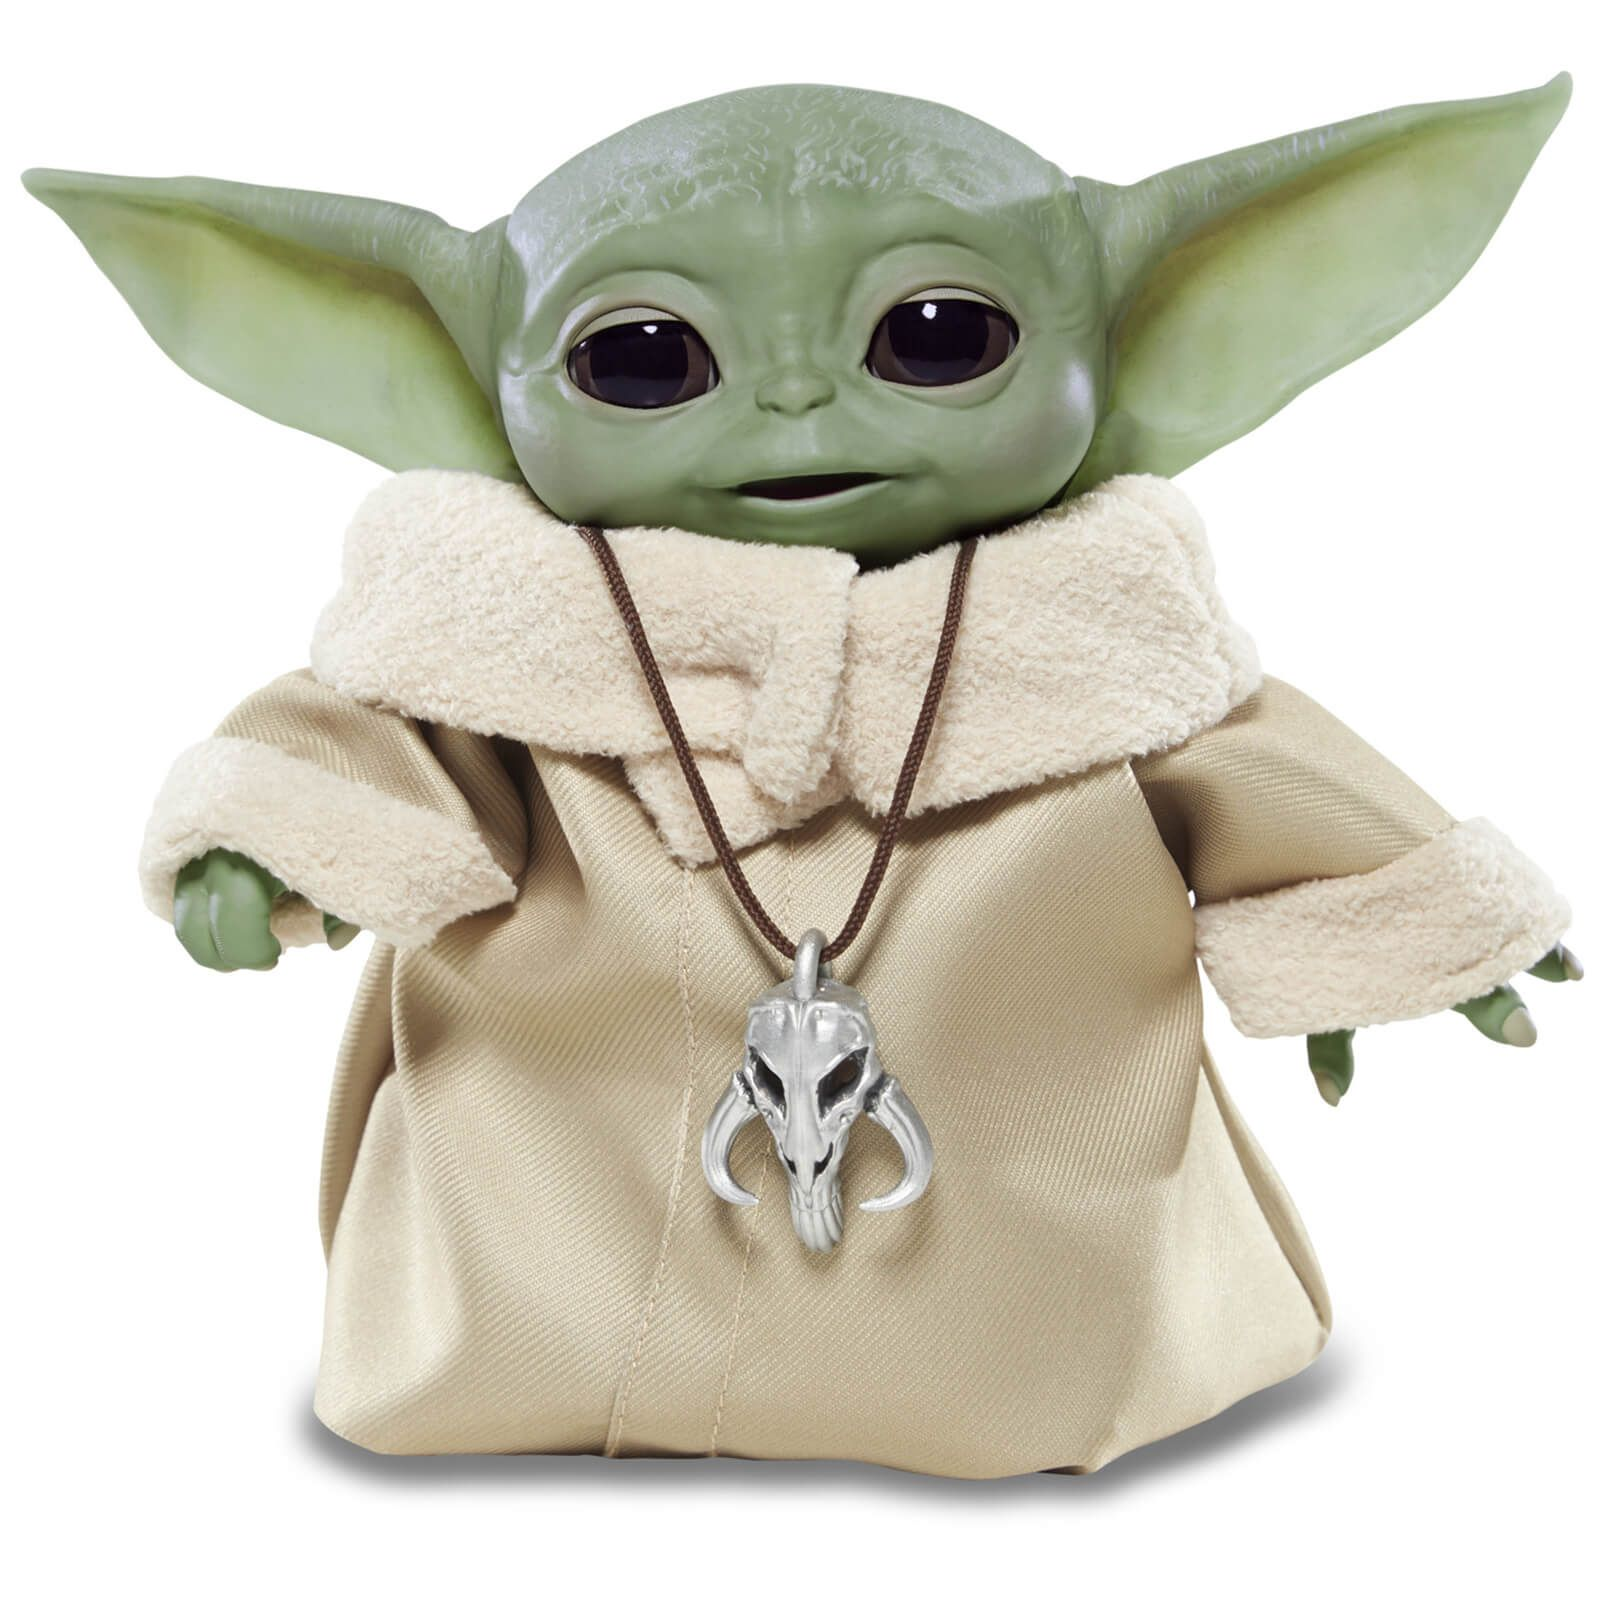 Hasbro's Baby Yoda animatronic toy is finally available to purchase 13